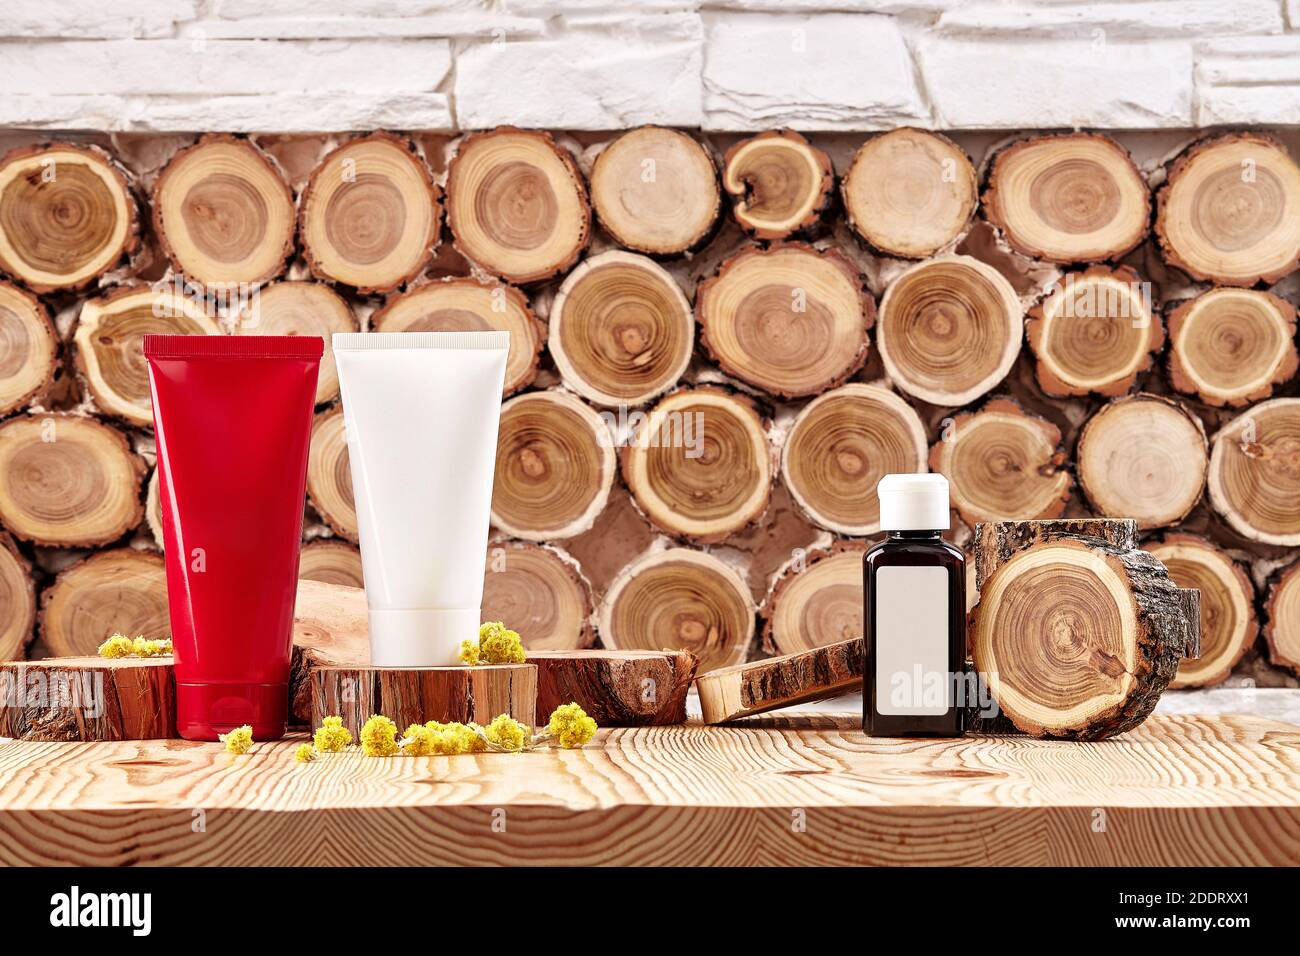 Two colorful cosmetic tubes and brown plastic bottle with branding area, small buds of blooming yellow flowers on wooden surface. Close up, copy space Stock Photo